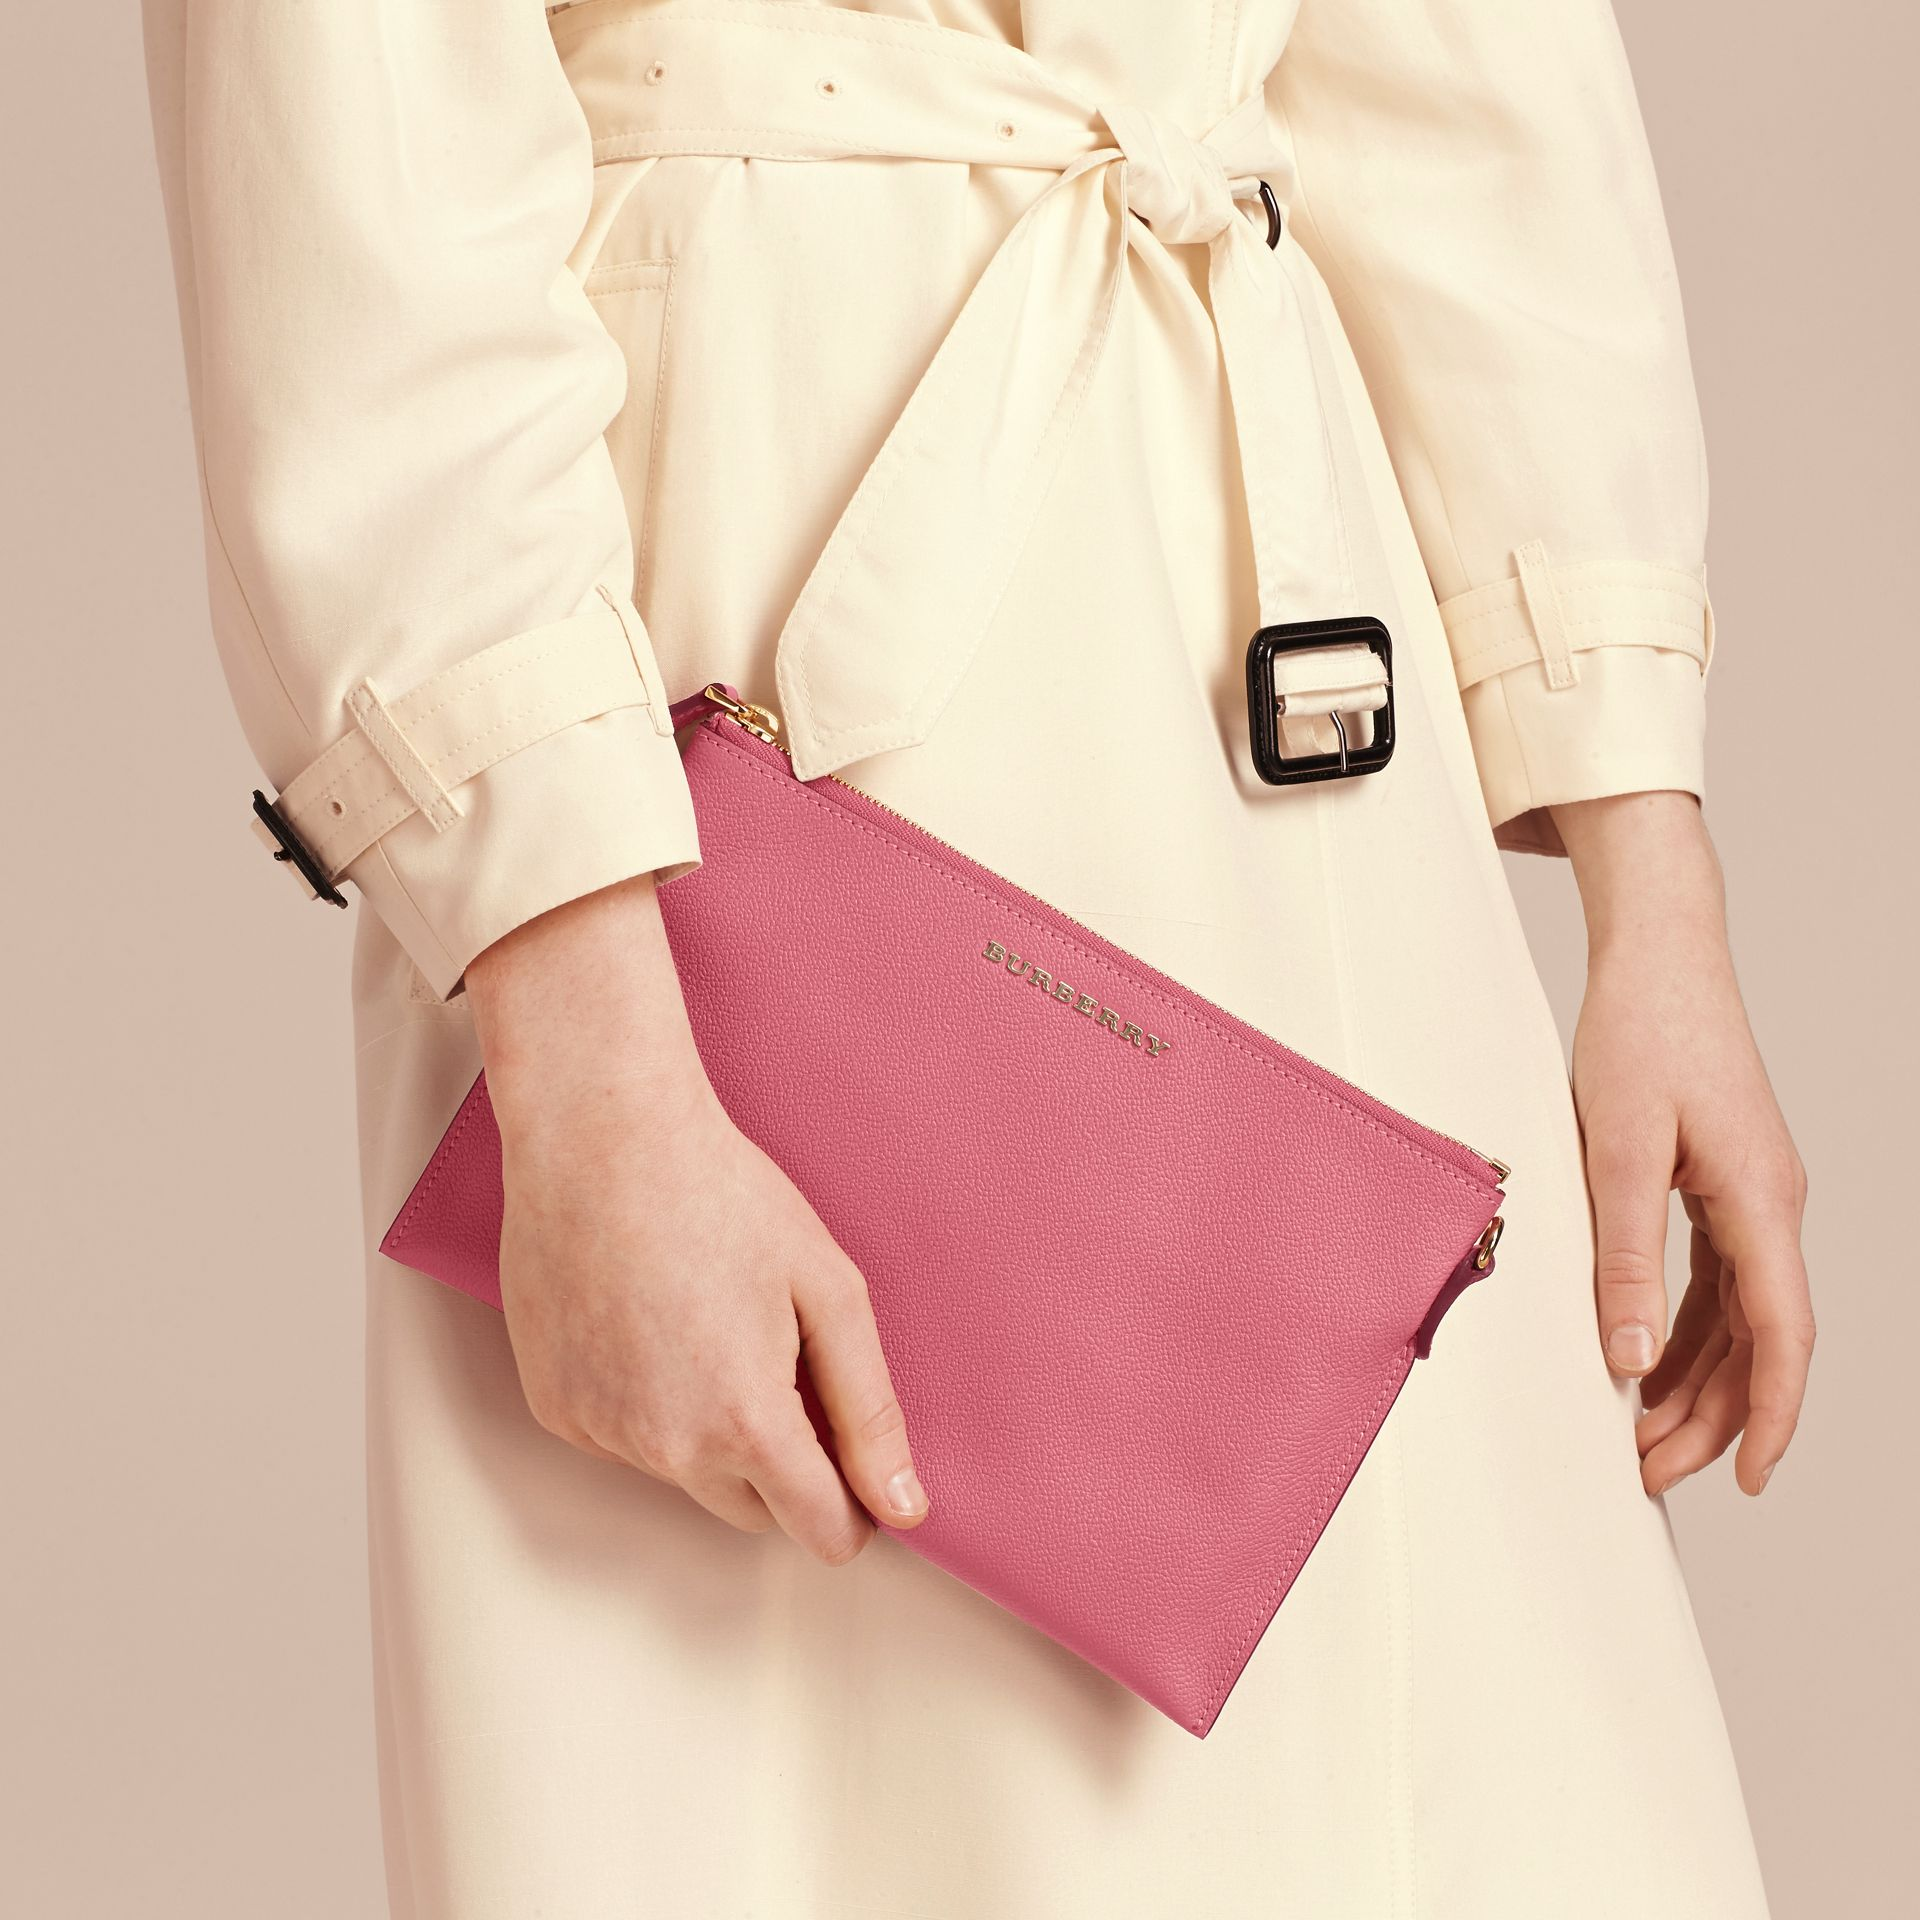 Pink azalea Leather Clutch Bag with Check Lining Pink Azalea - gallery image 4